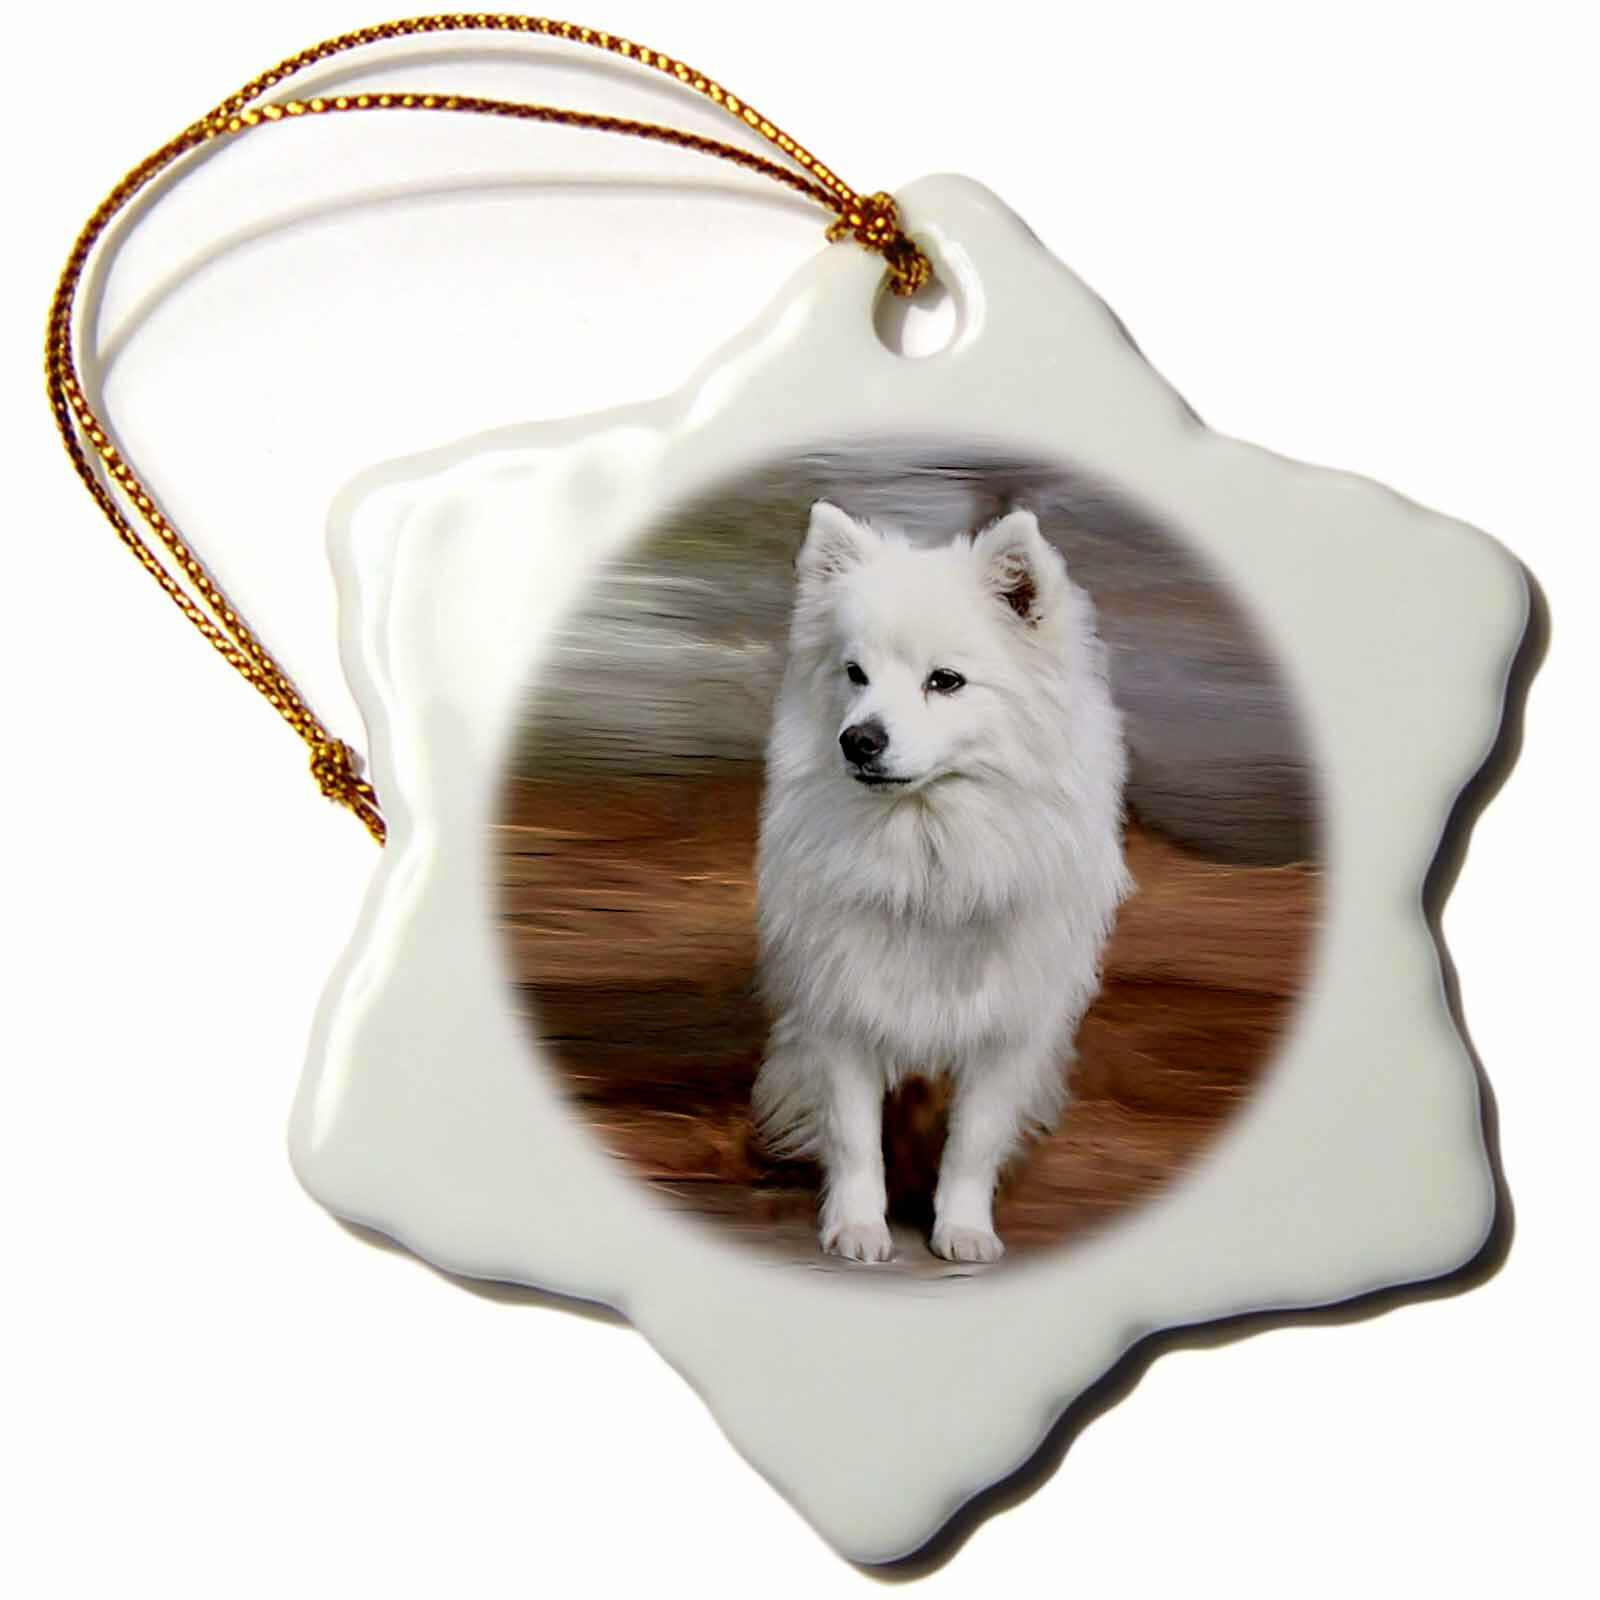 The Holiday Aisle American Eskimo Toy Dog Holiday Shaped Ornament Wayfair